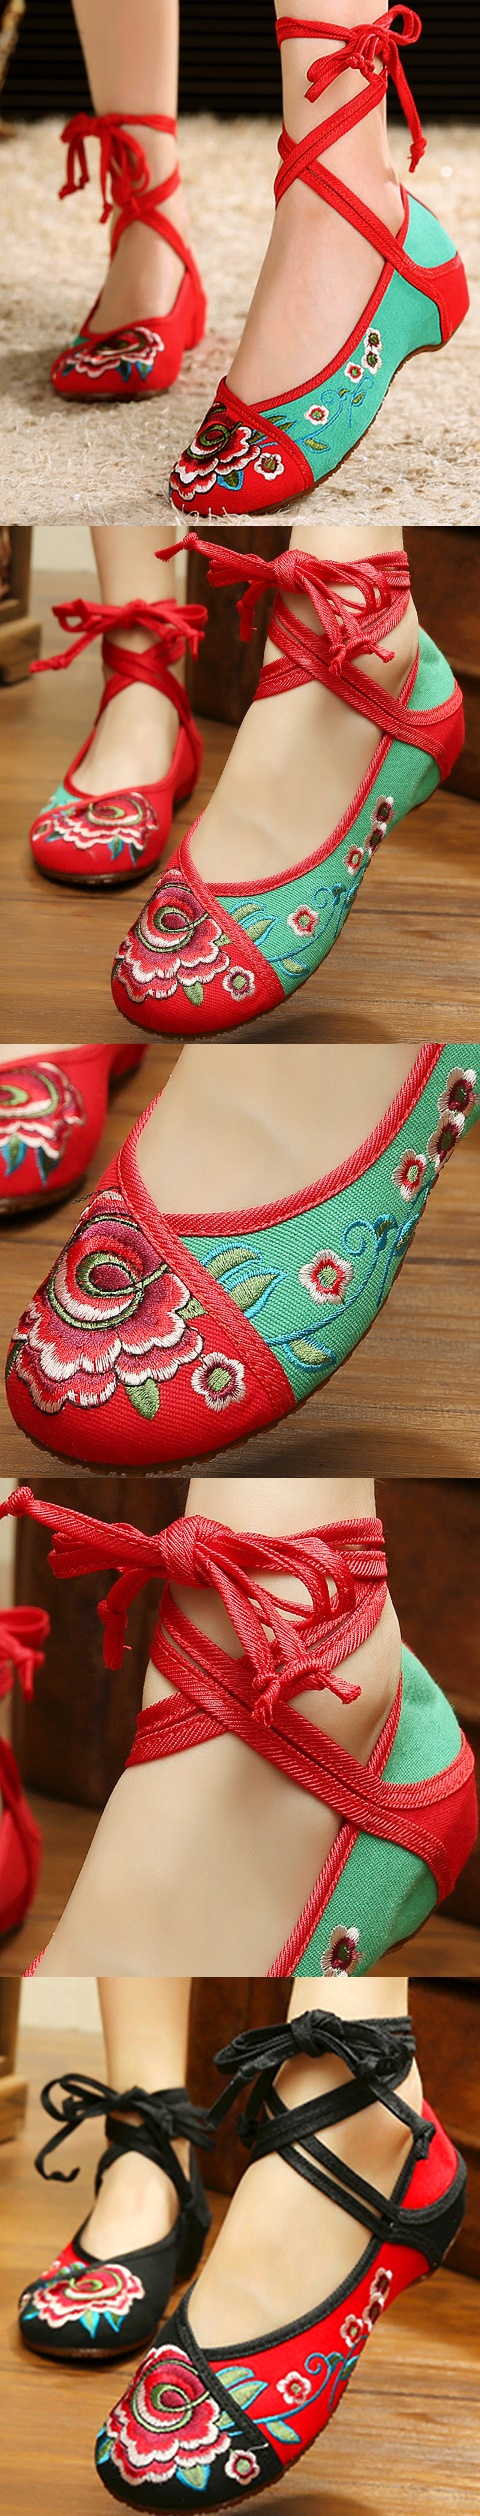 Low-Heel Floral Embroidery Shoes (Multi-color)